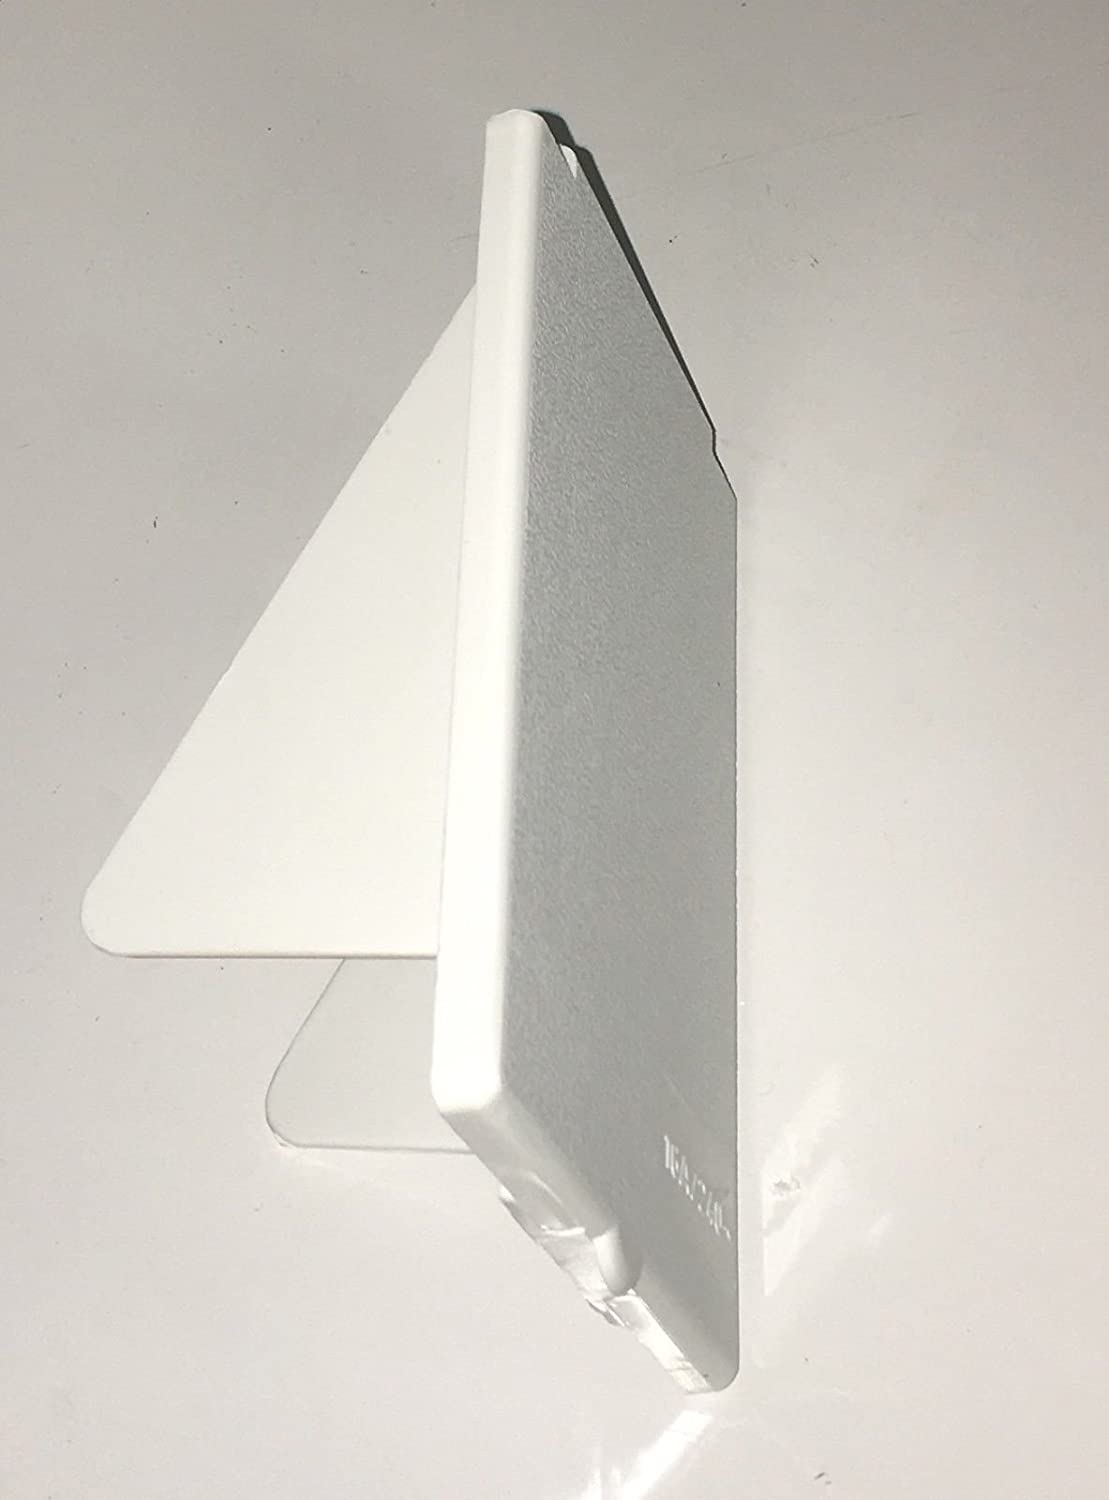 CARAVAN MOTORHOME REPLACEMENT COVER FOR EXTERNAL SOCKET - WHITE Pennine Leisure Supplies